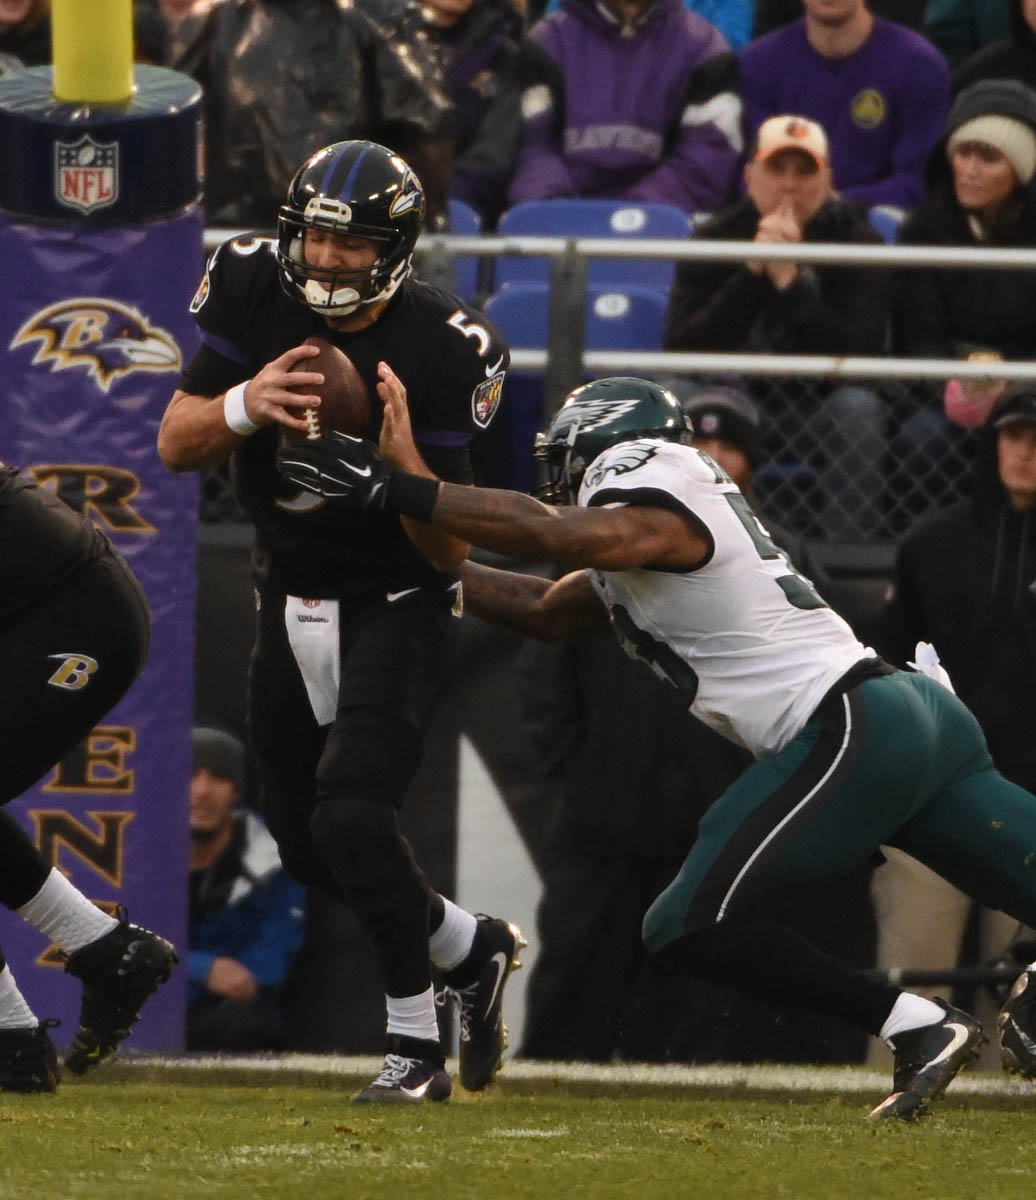 ravens vs eagles - photo #35